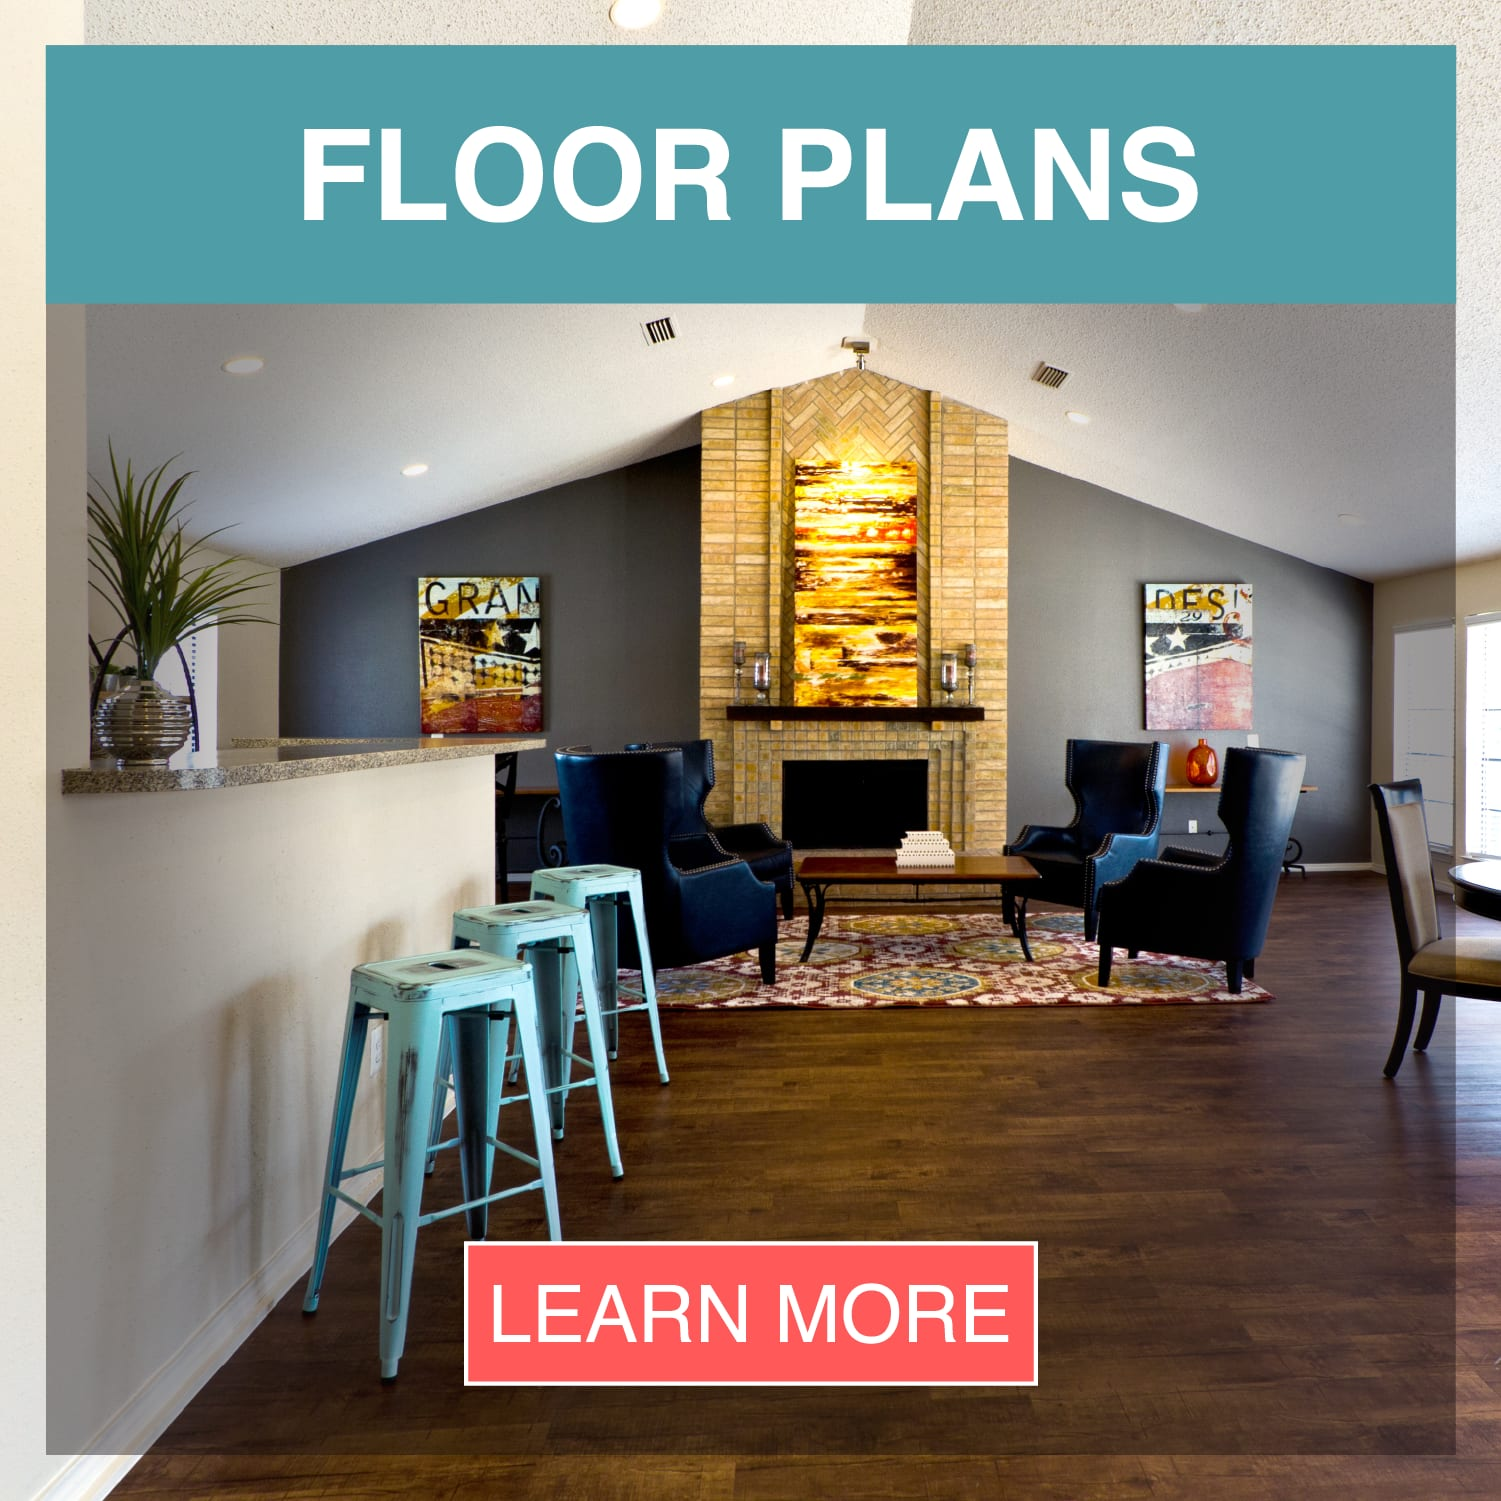 Link to floor plans at The Arbors of Carrollton in Carrollton, Texas